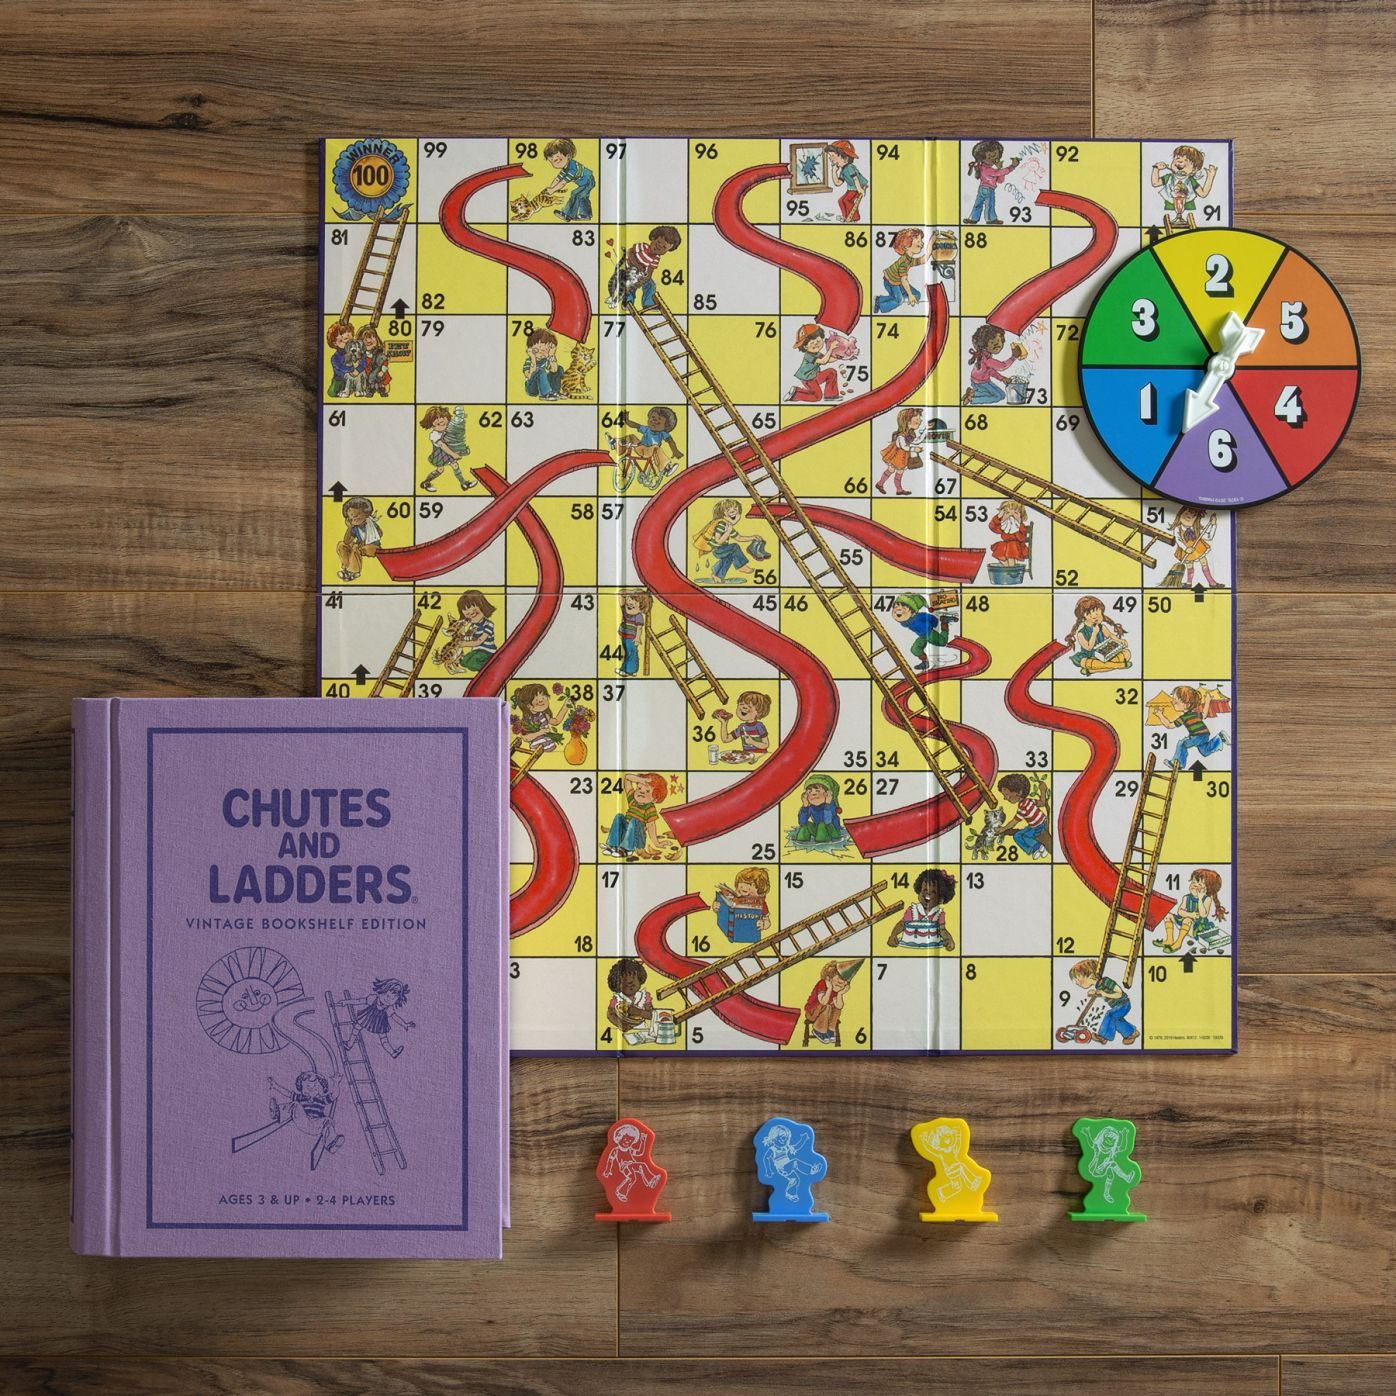 Chutes and Ladders Vintage Bookshelf Edition Deluxe Linen Book Board Game New